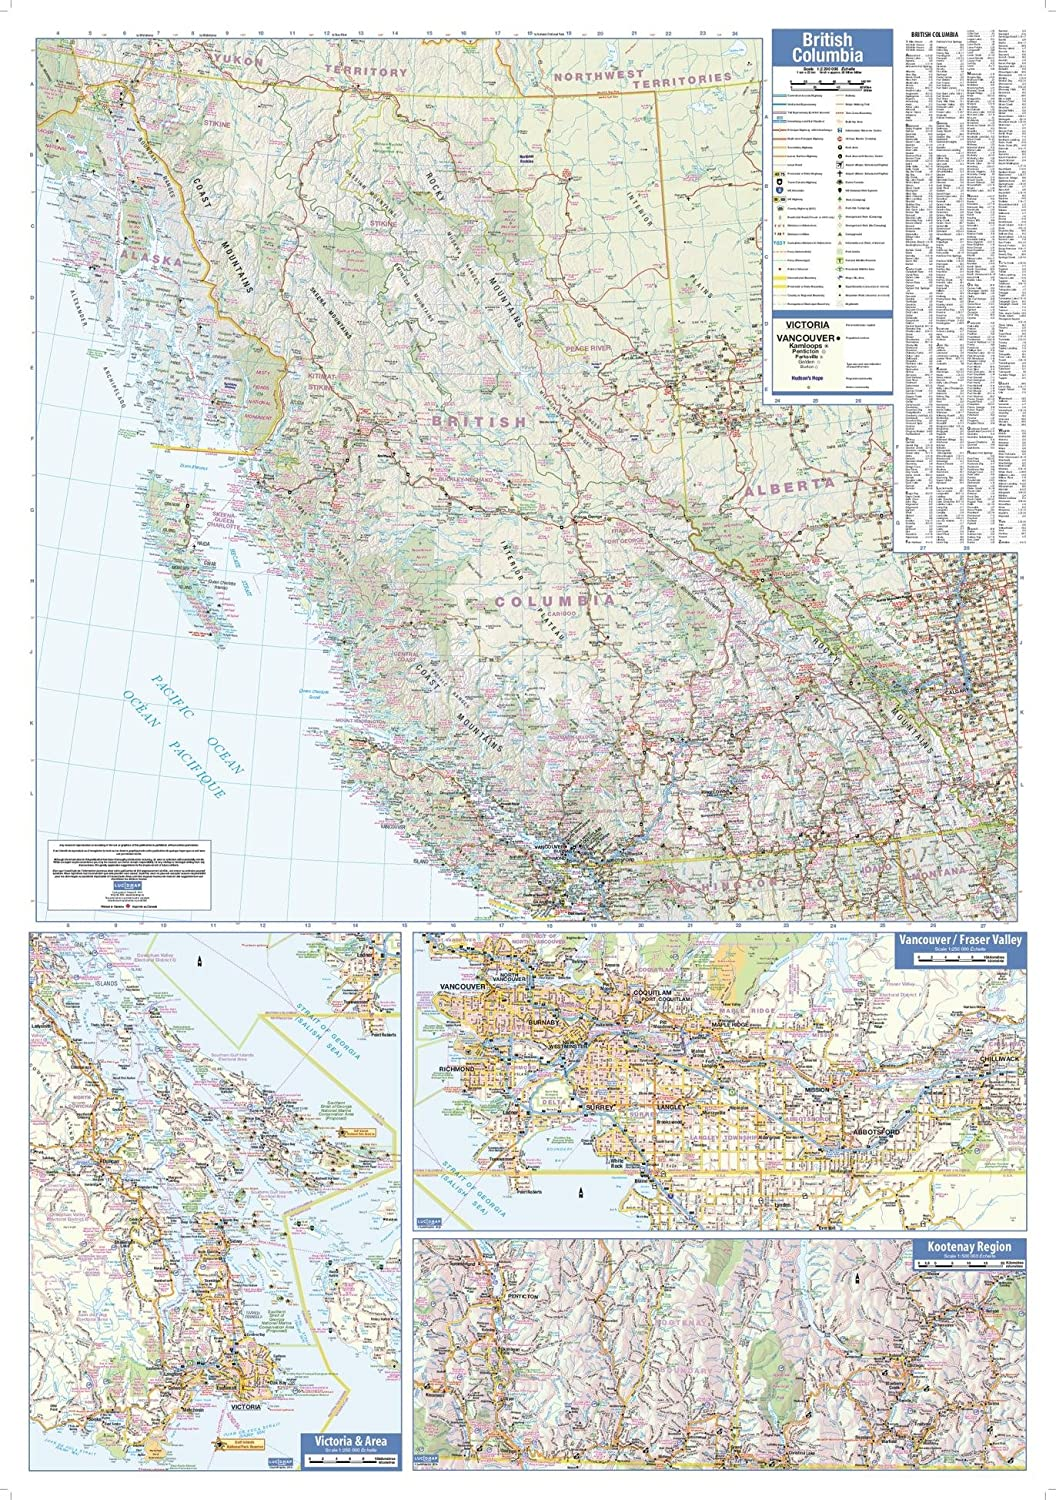 British Columbia Wall Map - 28.75 x 40.75 Laminated MapSherpa